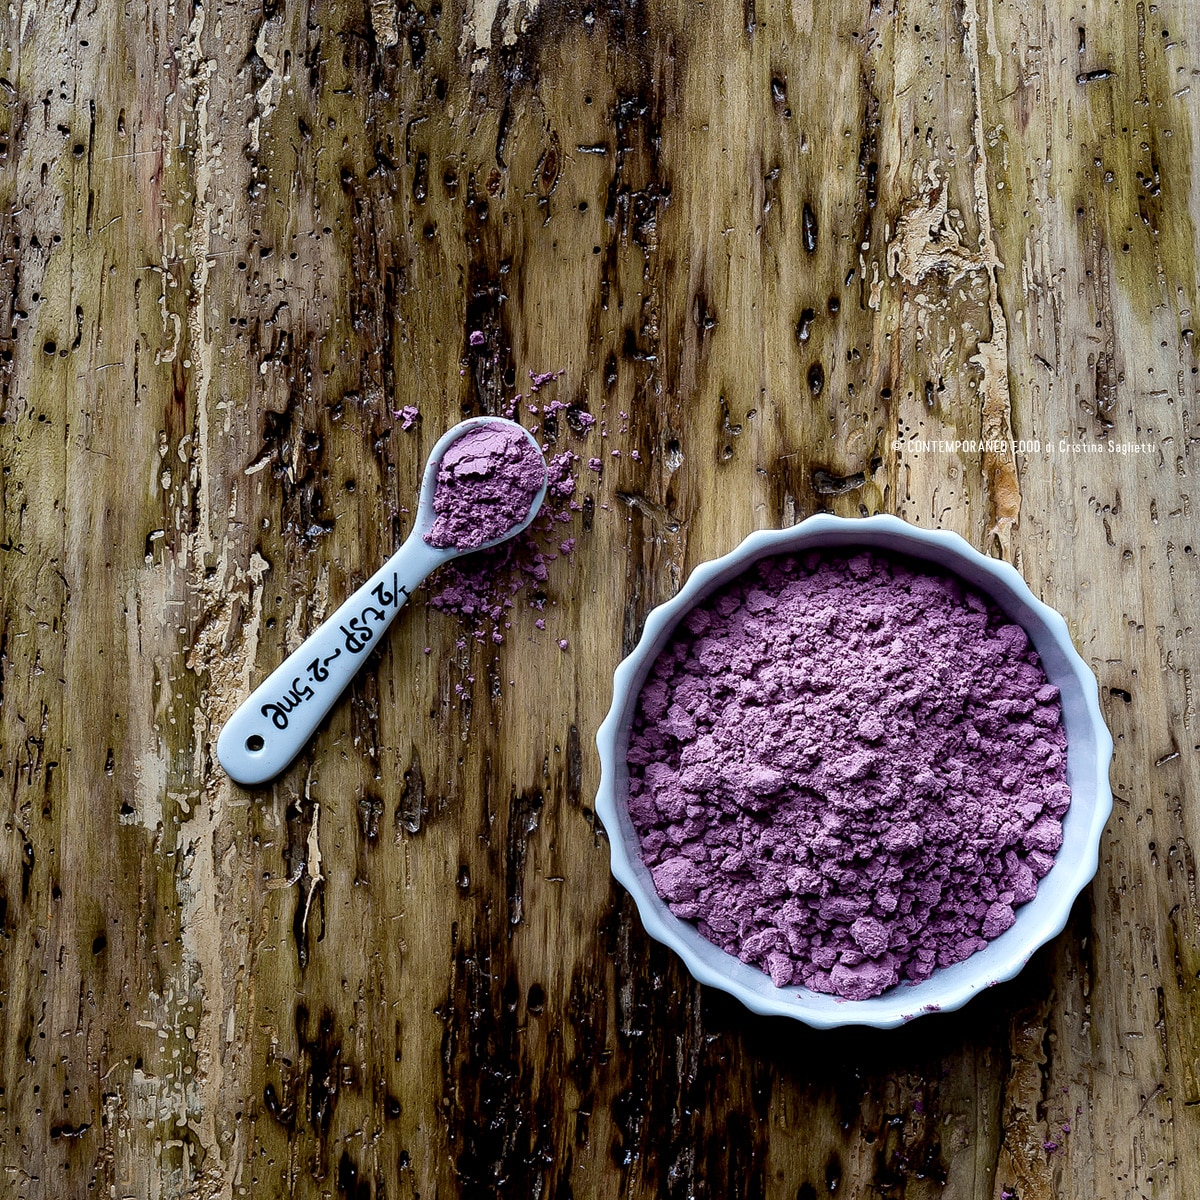 polvere-bacche-di-acai-benefici-proprietà-1-contemporaneo-food-healthy-food